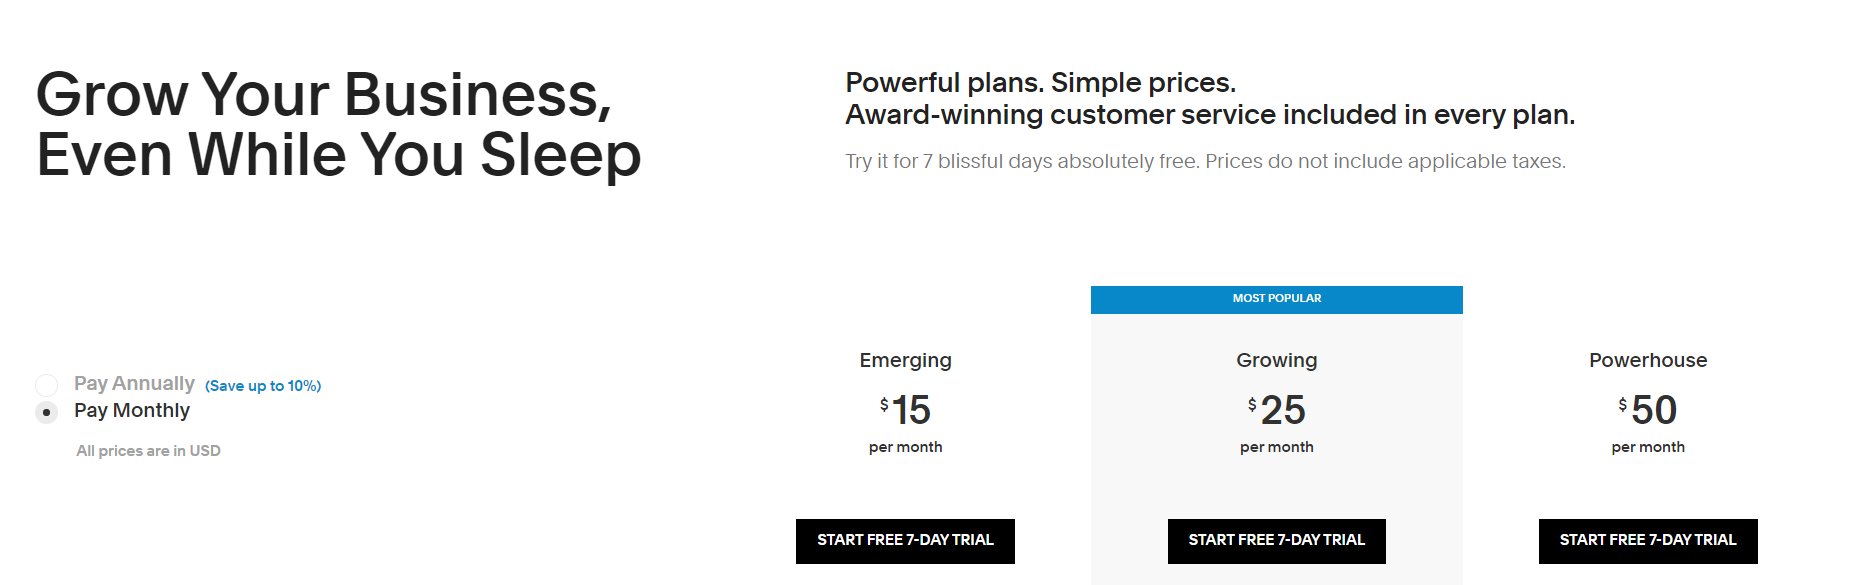 acuity scheduling pricing